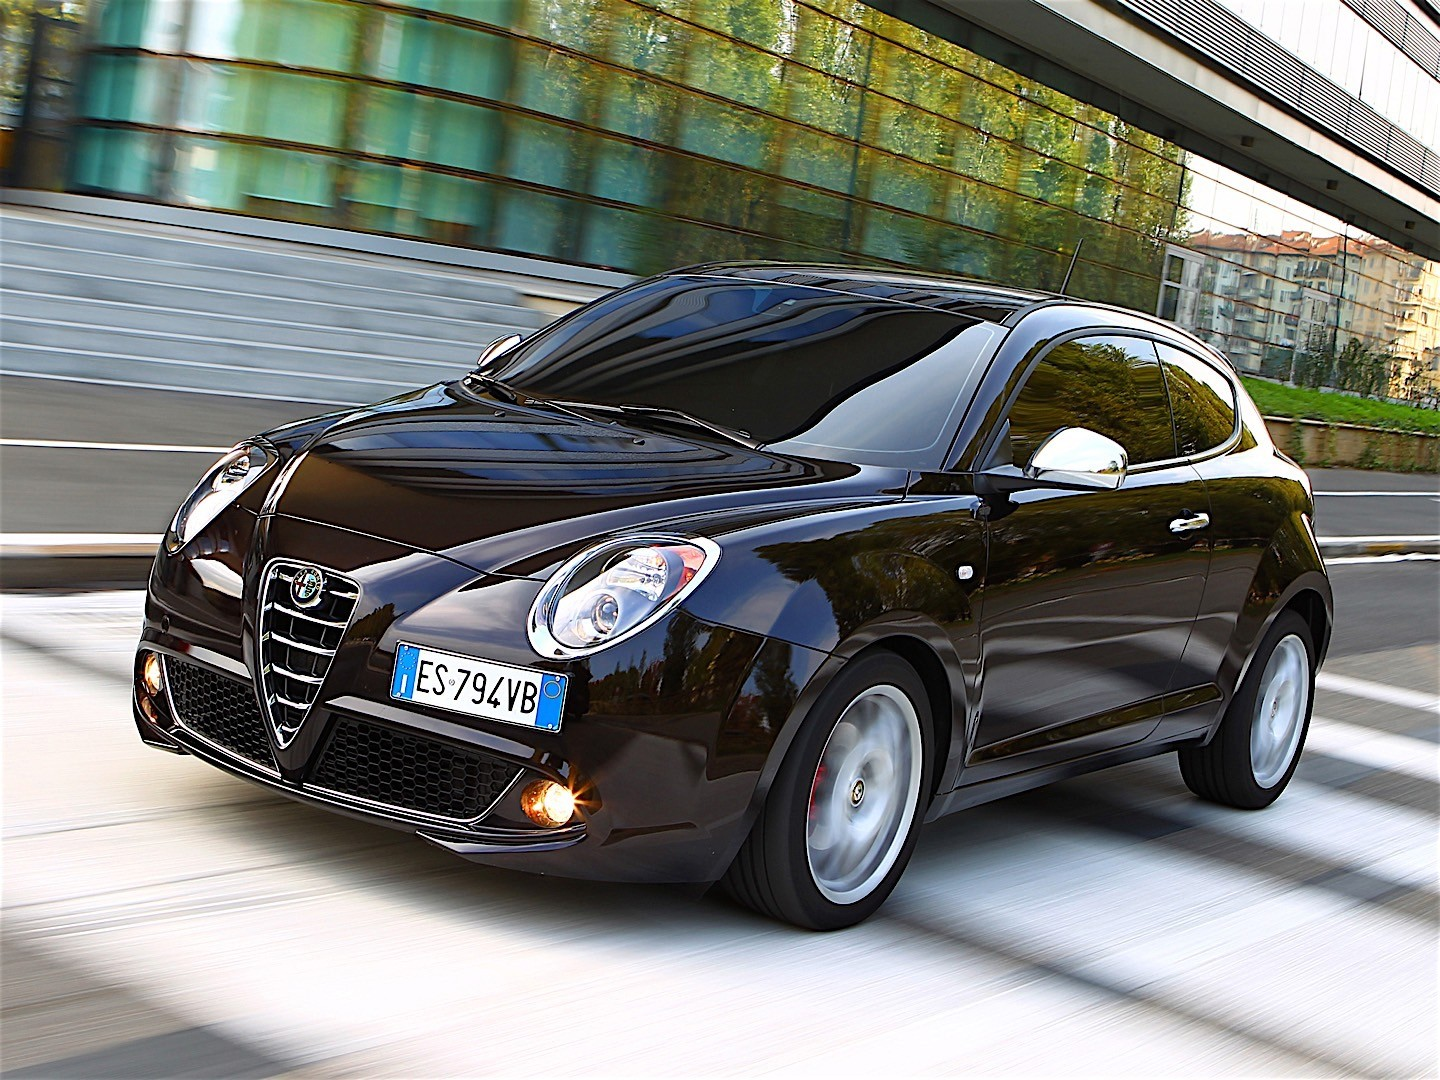 alfa romeo mito specs photos 2013 2014 2015 2016 autoevolution. Black Bedroom Furniture Sets. Home Design Ideas